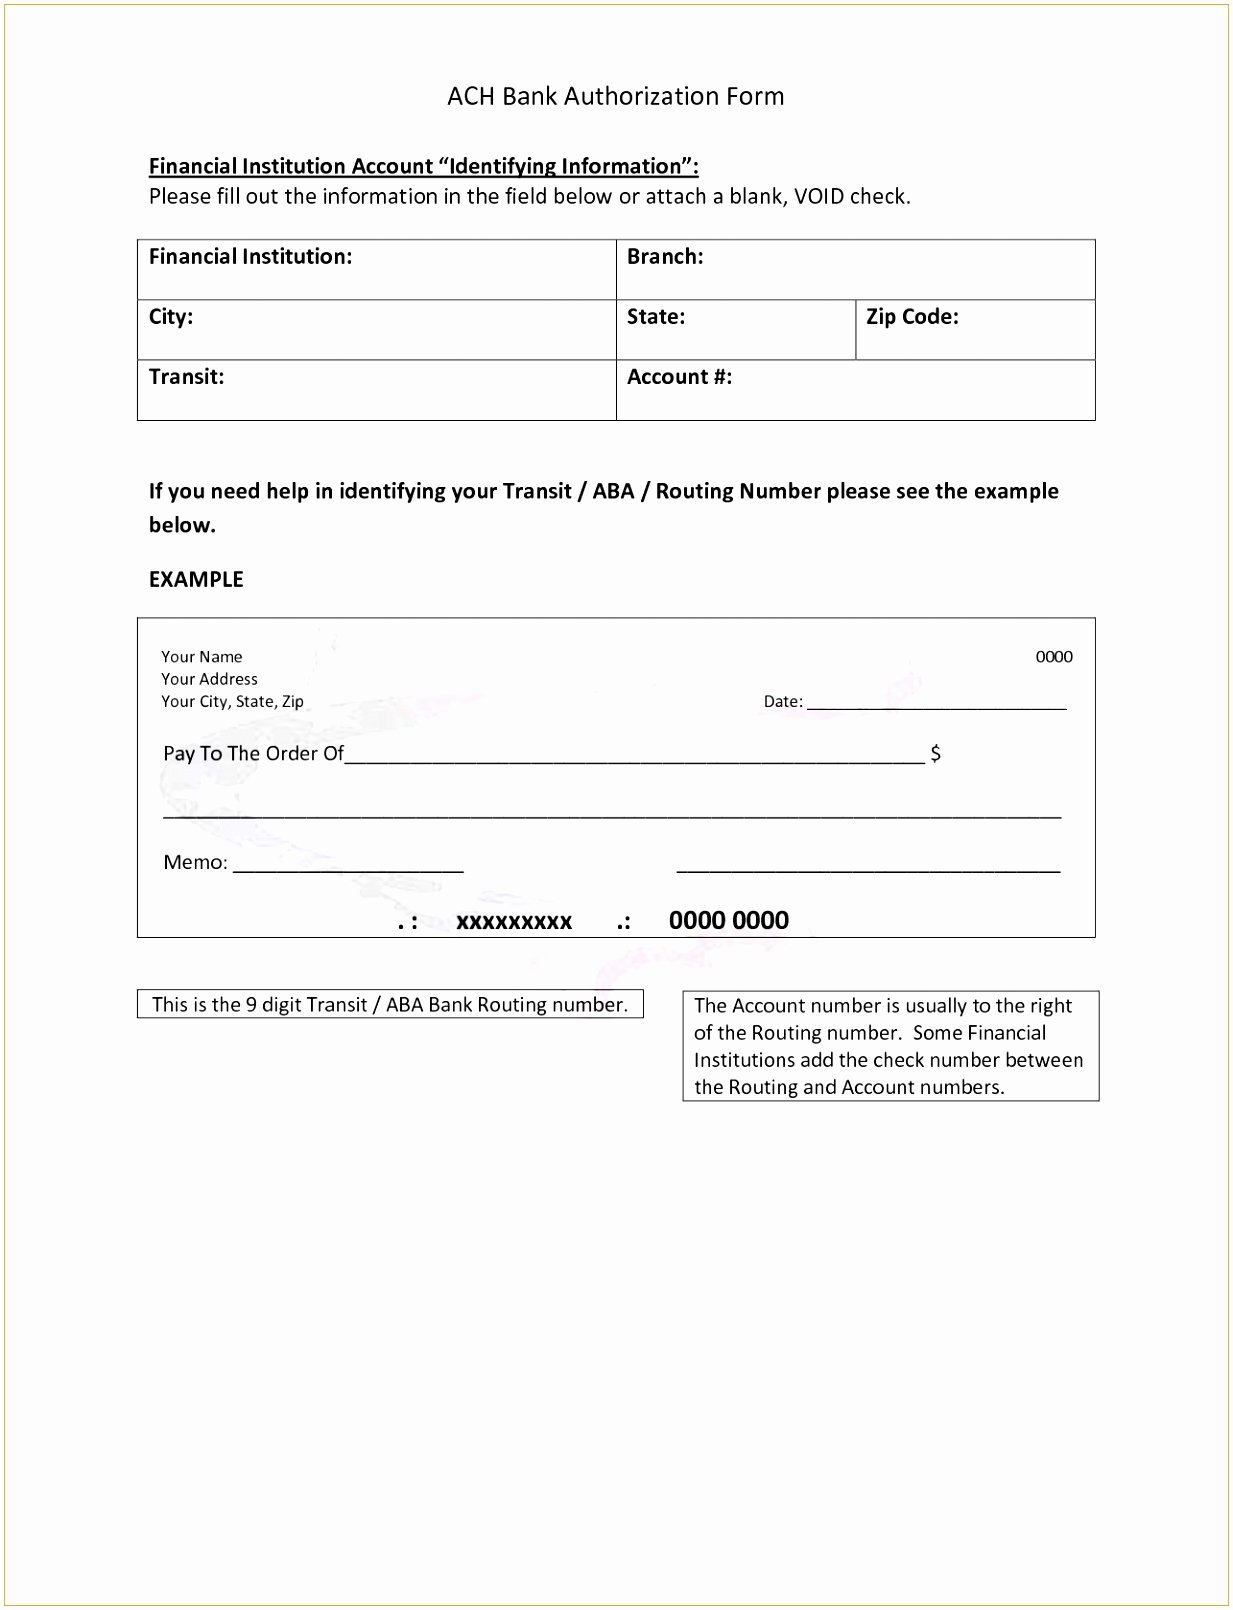 Ach Deposit Authorization form Template Lovely 12 Ach forms Templates Eaxah